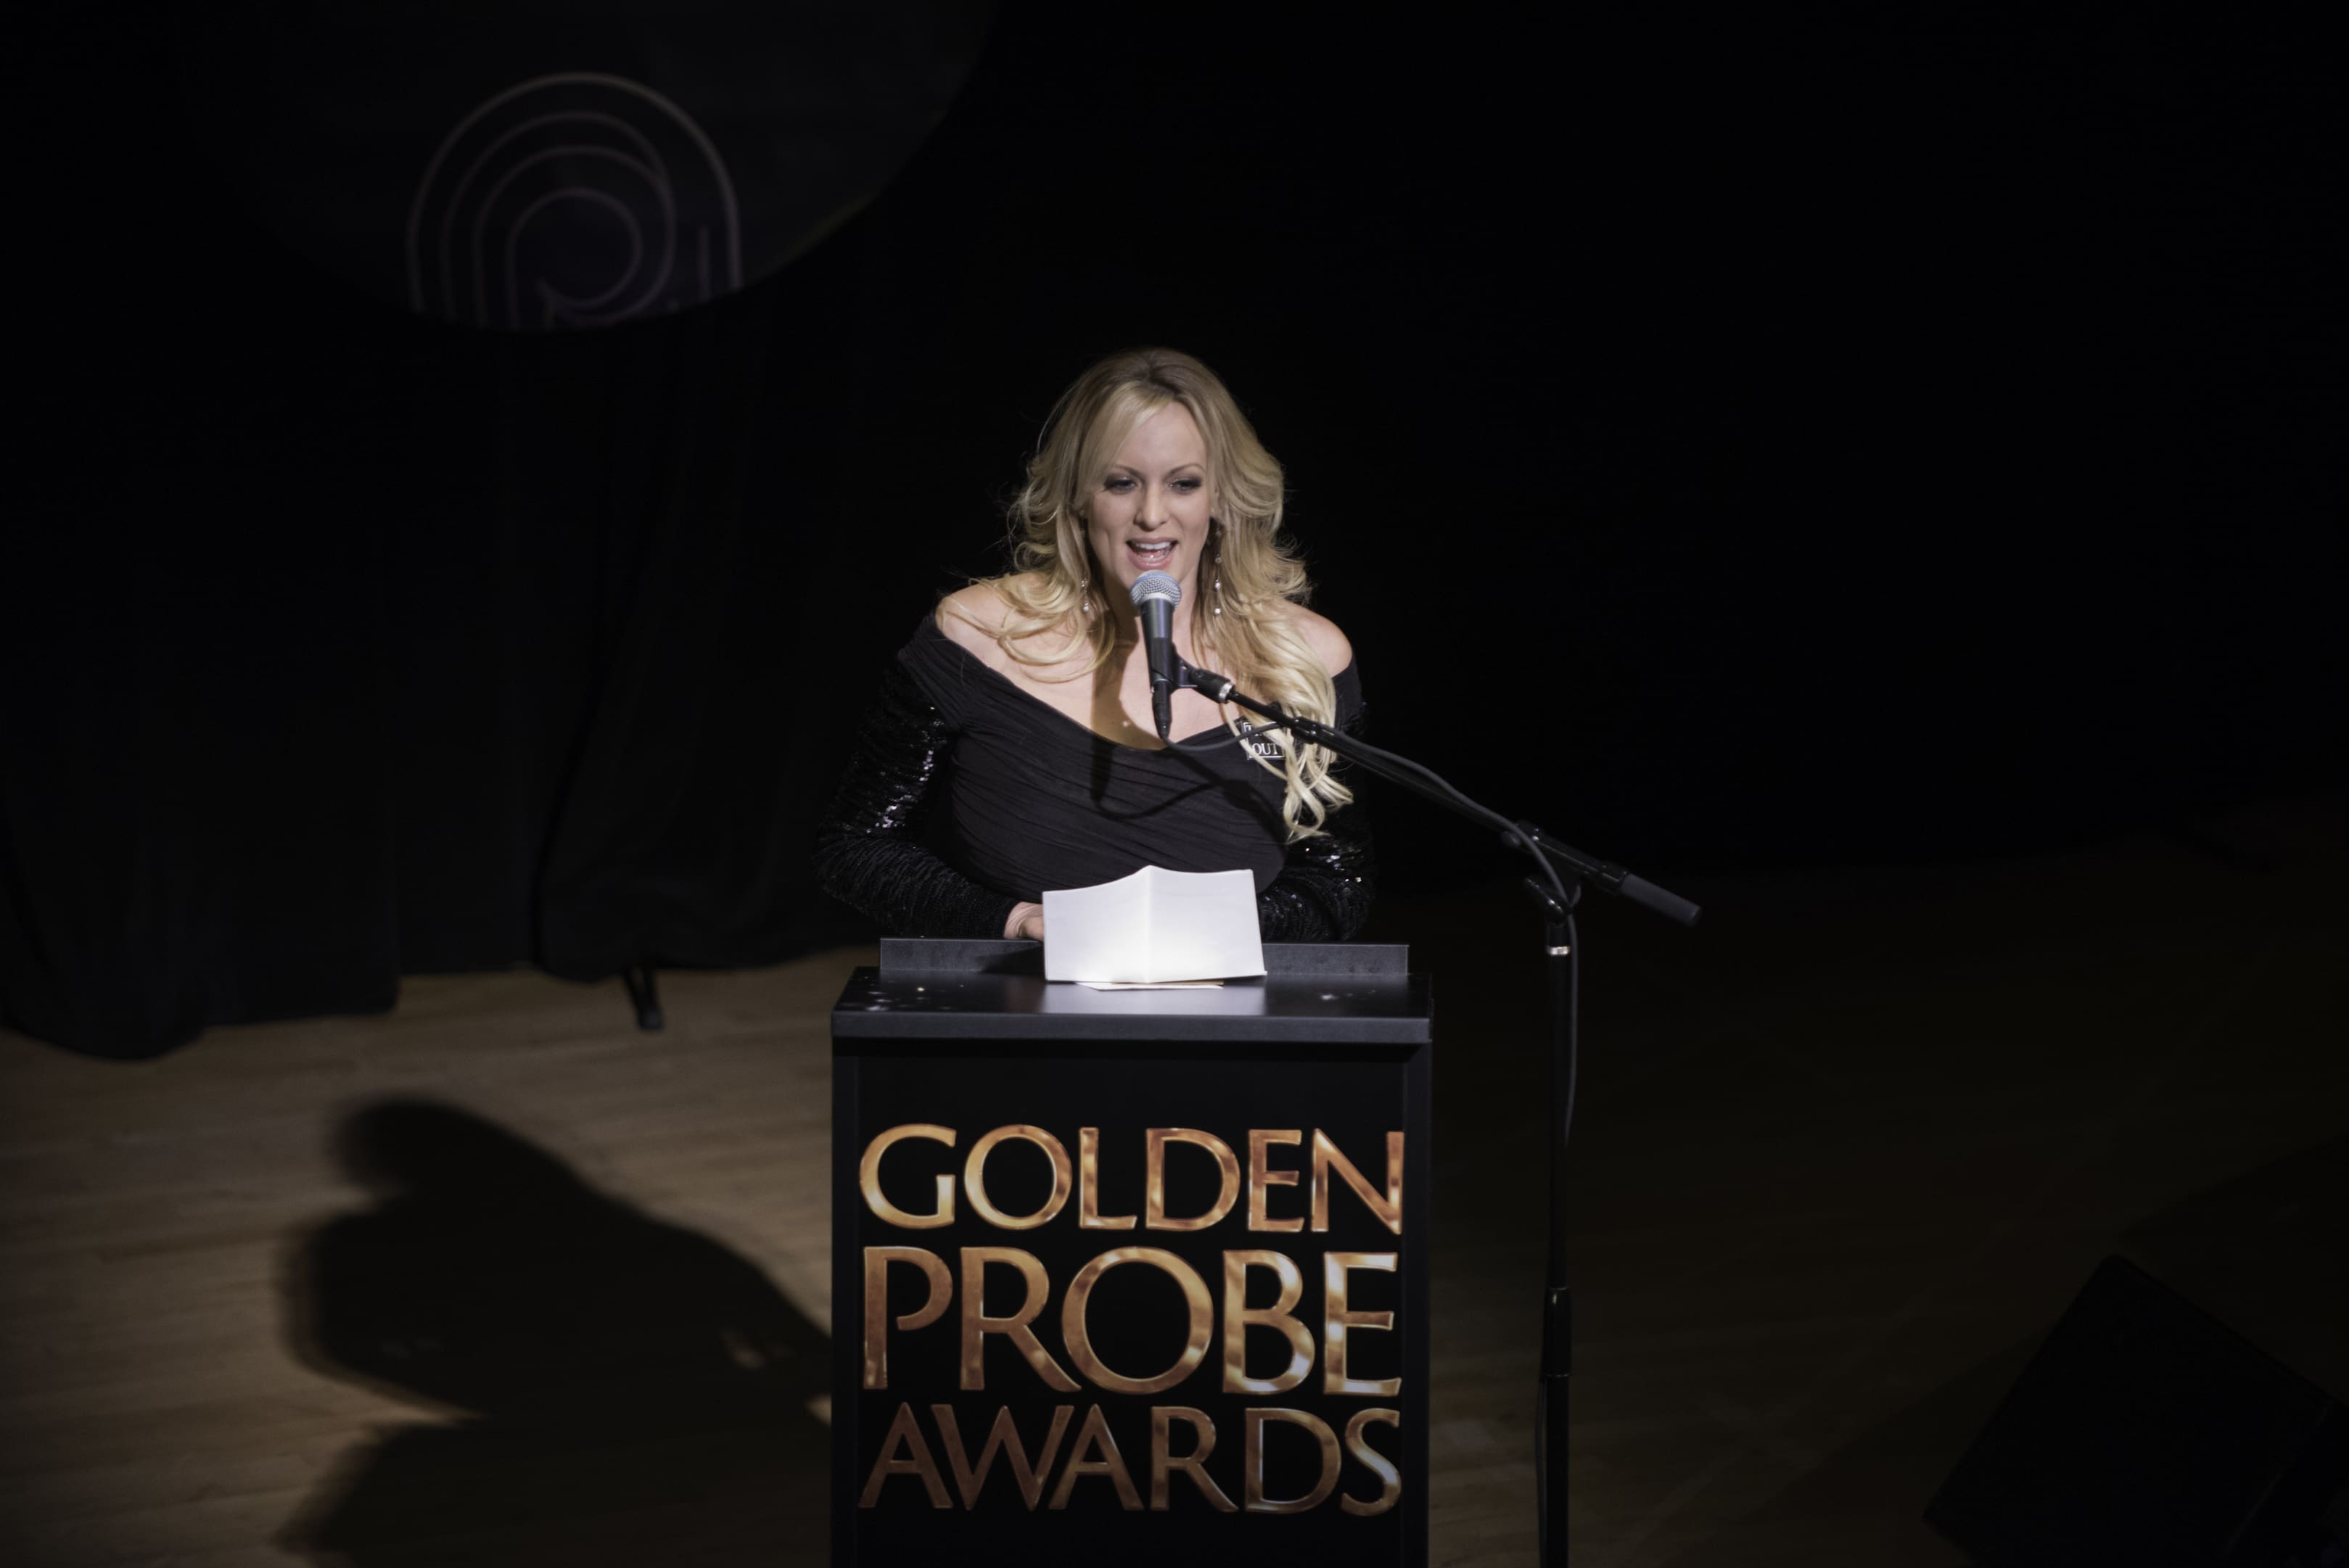 Stormy Daniels on stage at the Golden Probes